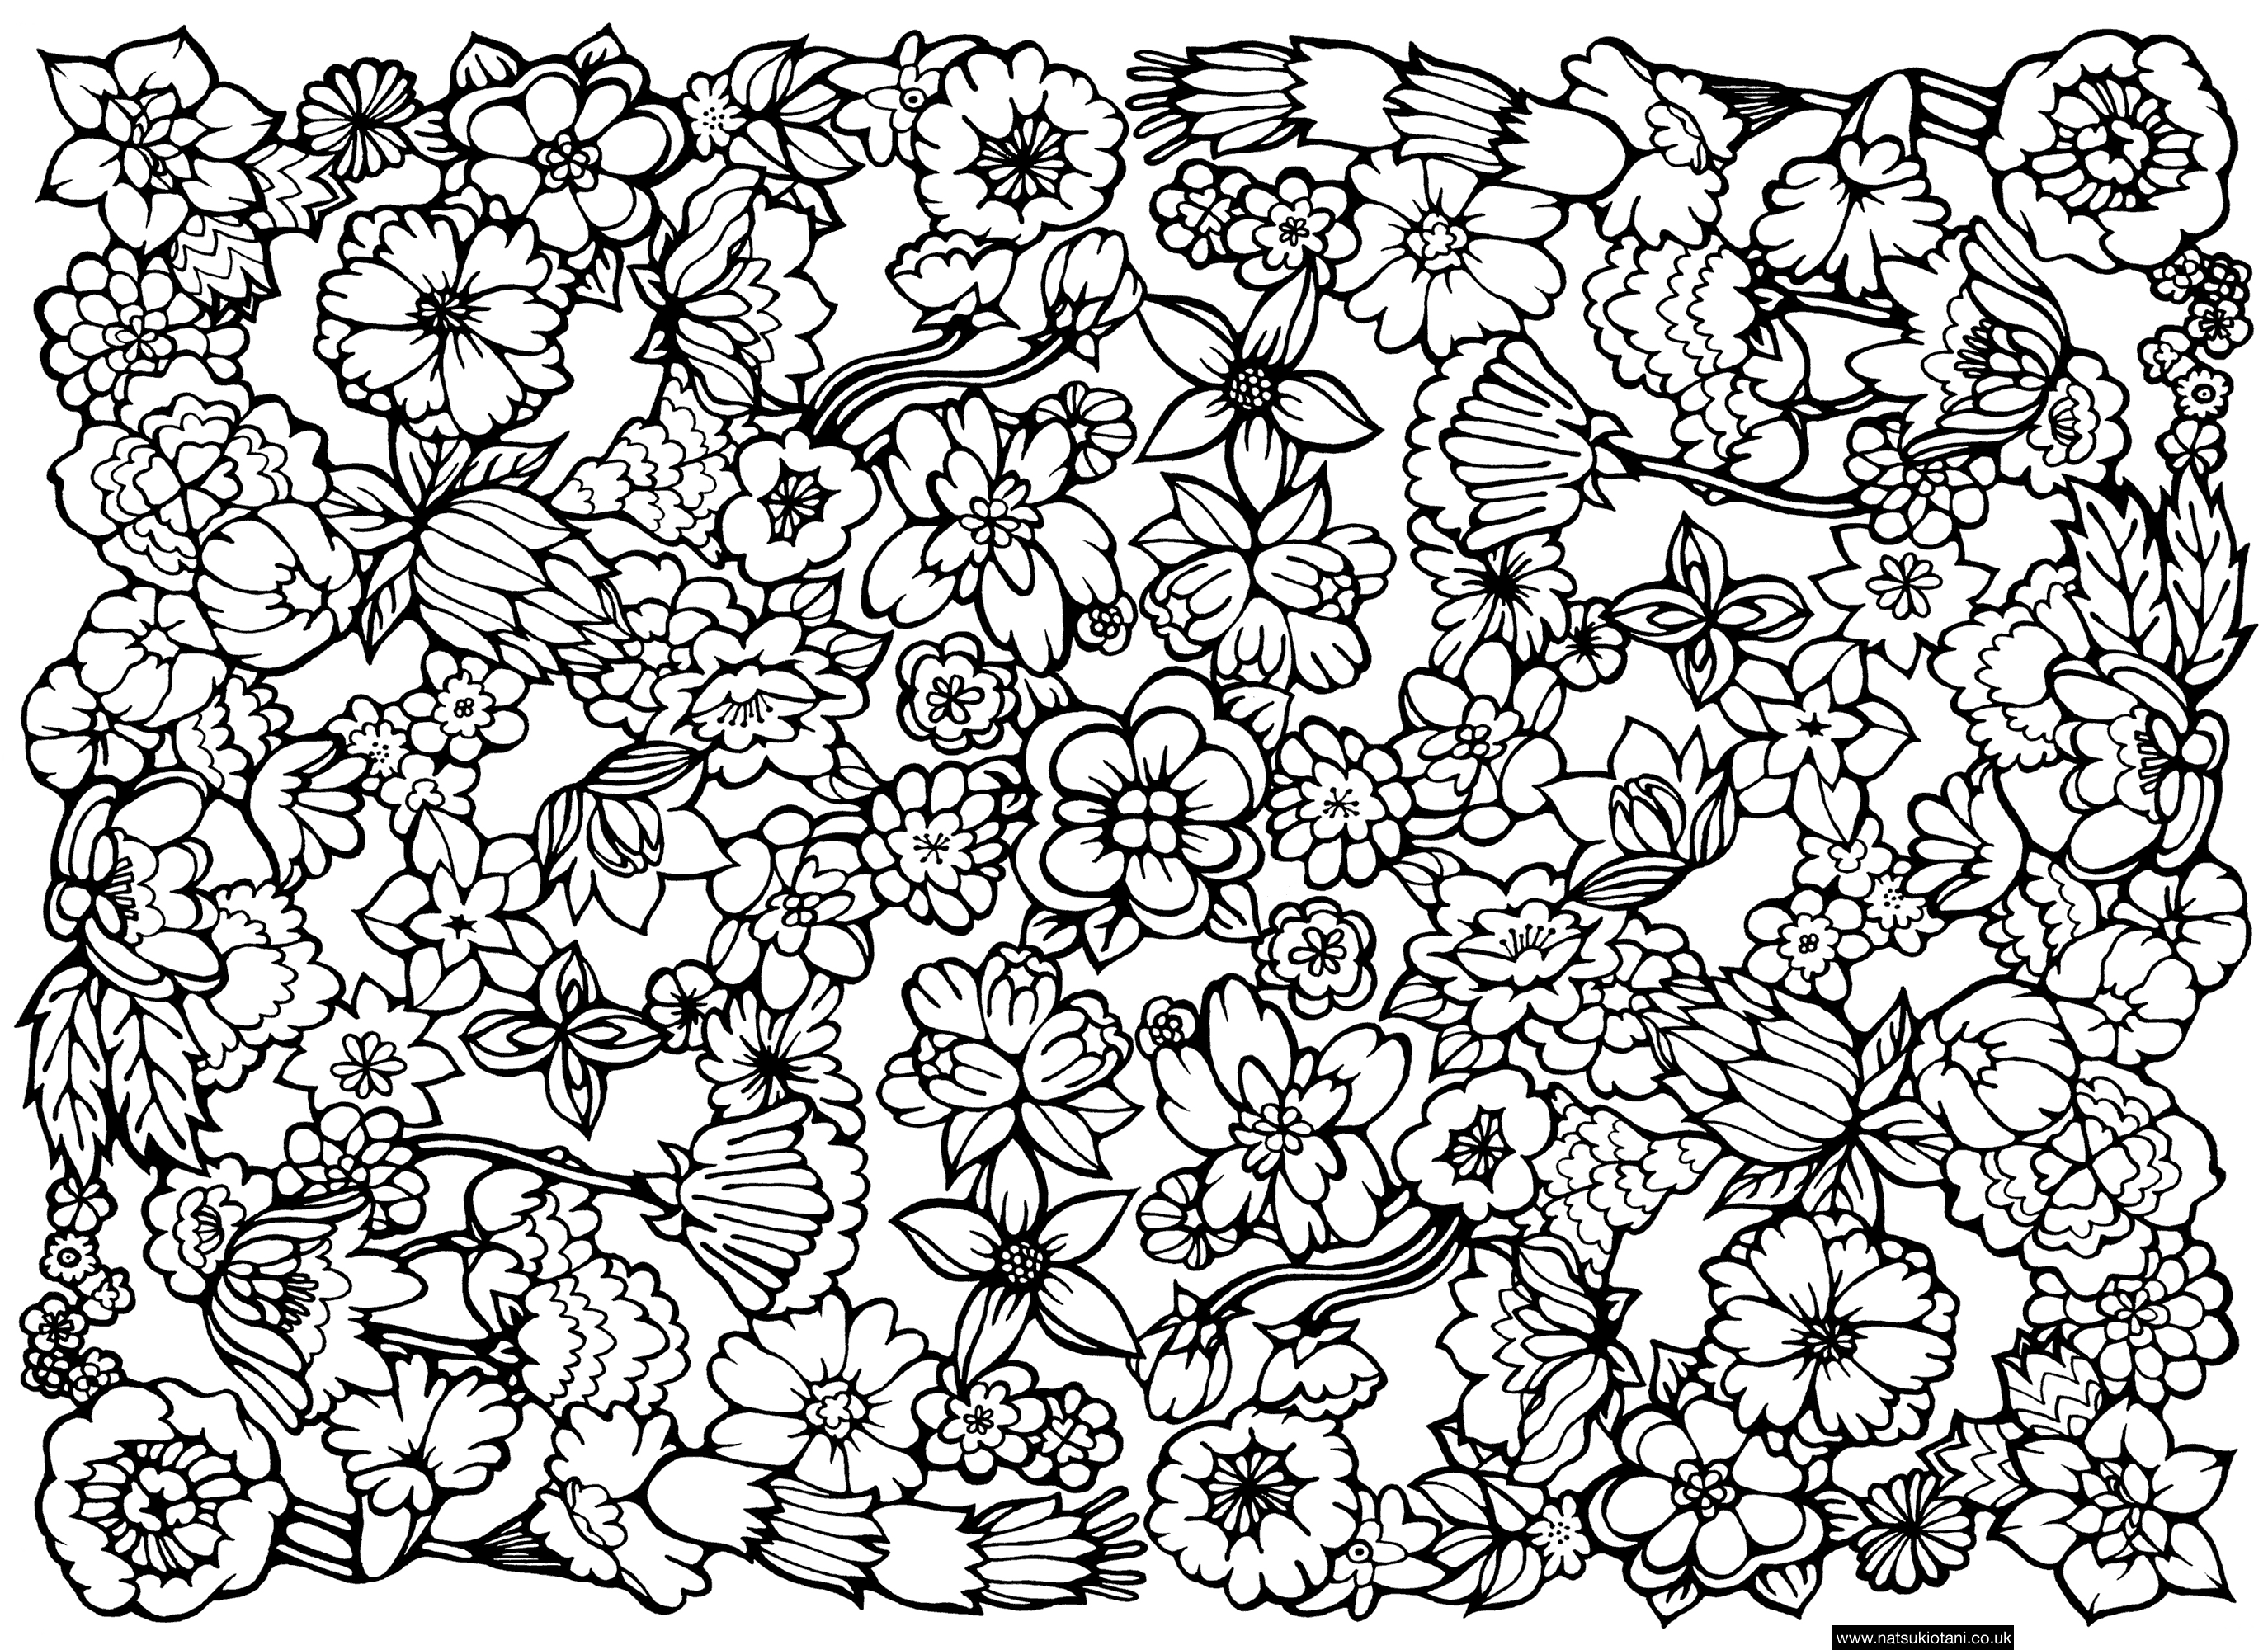 Coloring pages patterns - Free Adult Coloring Pages Mandalas And More 14443